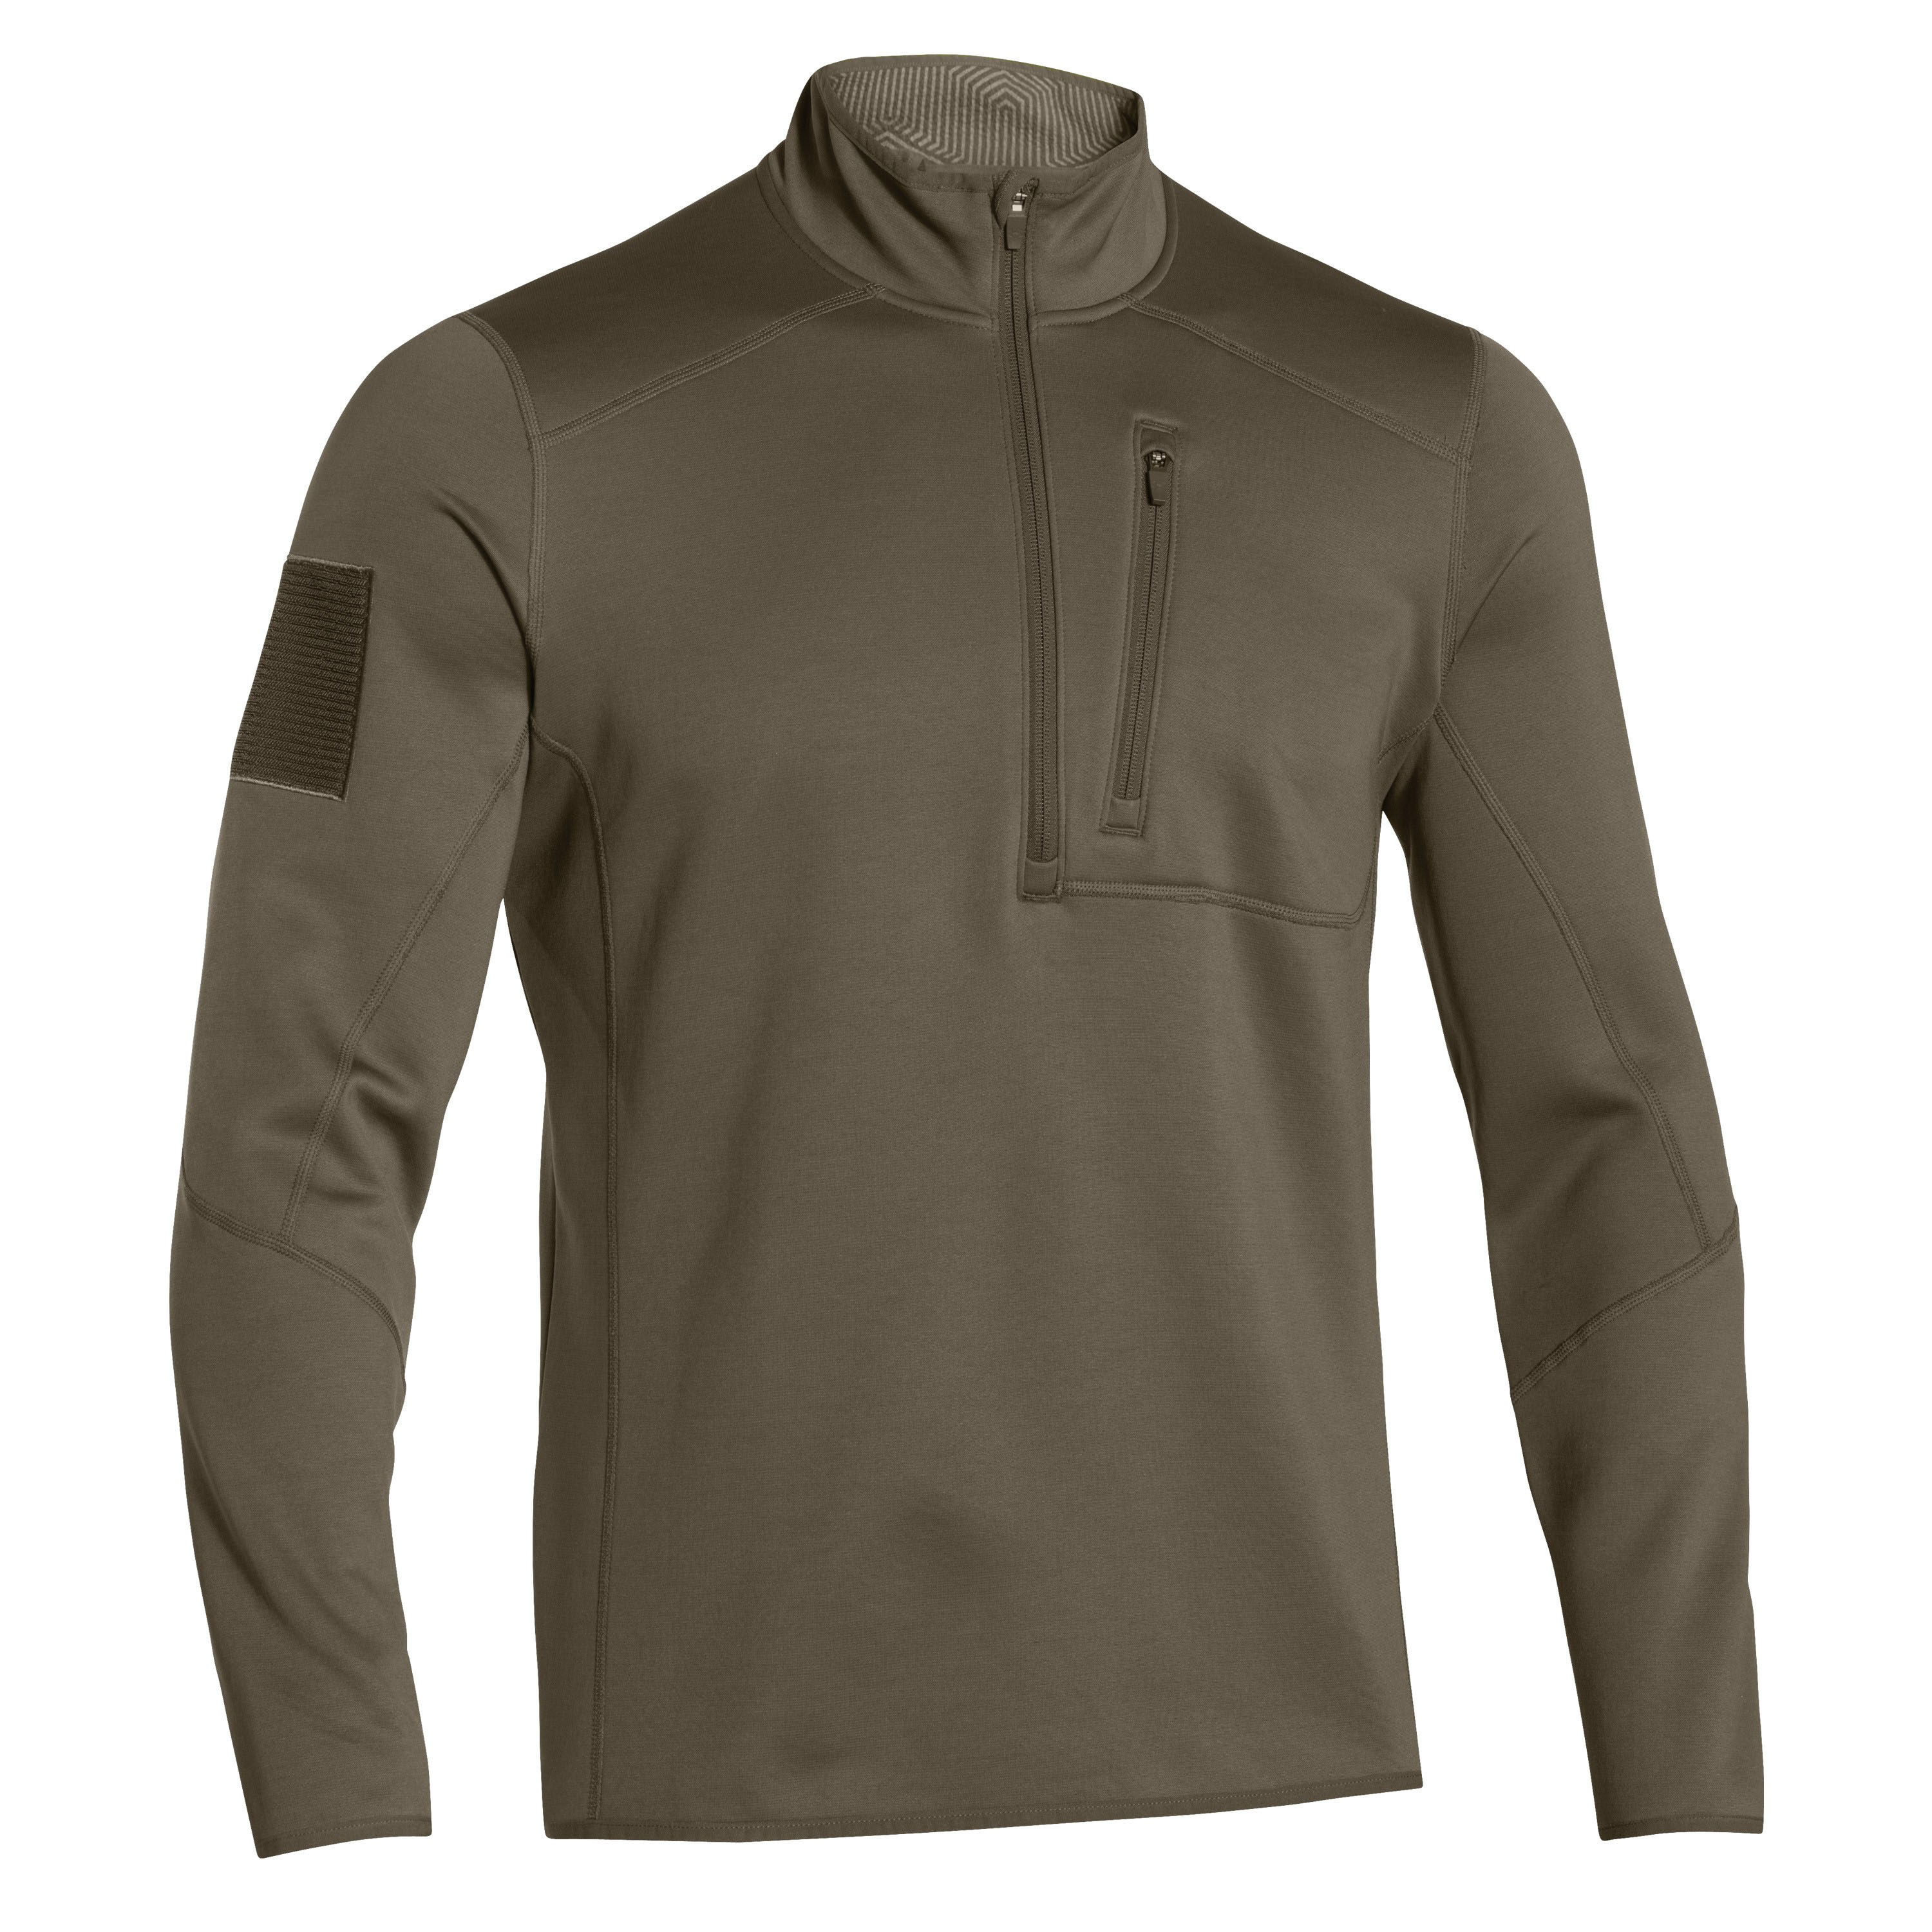 Under Armour Langarmshirt Tactical ColdGear Infrared oliv